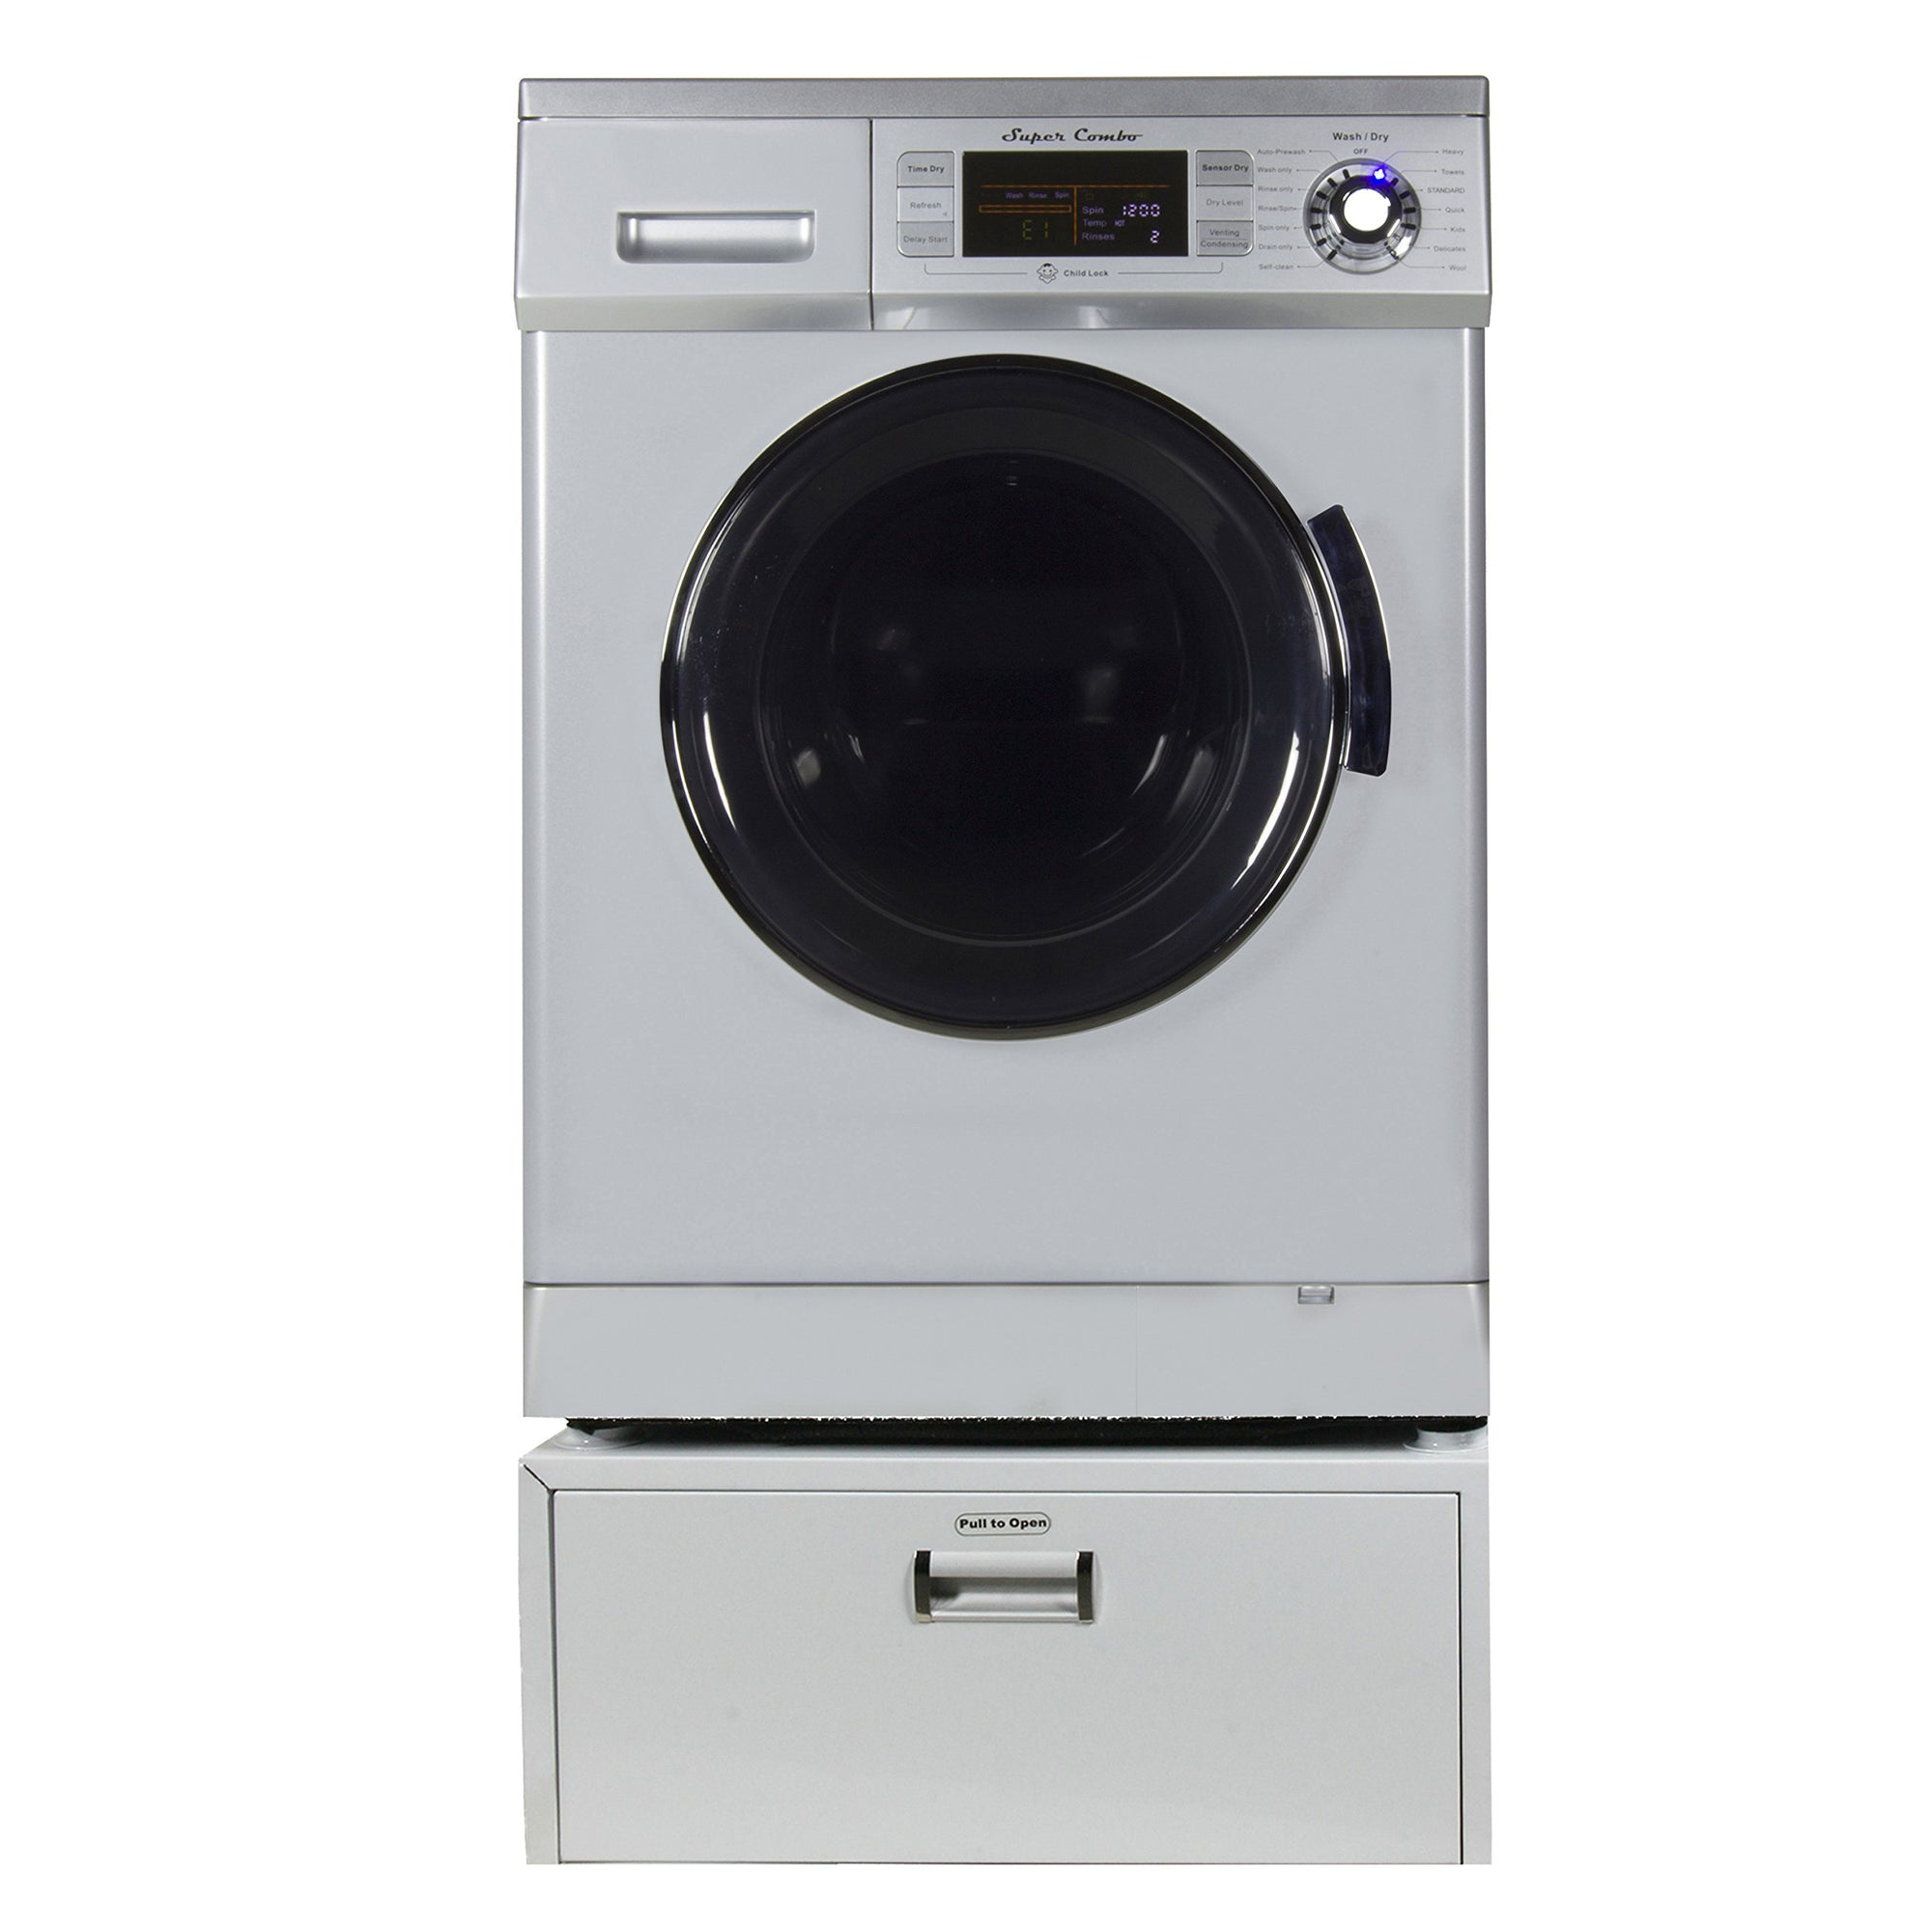 "Equator Super Combo Washer-Dryer EZ 4400 11"" High Pedestal with Storage drawer, in Silver"